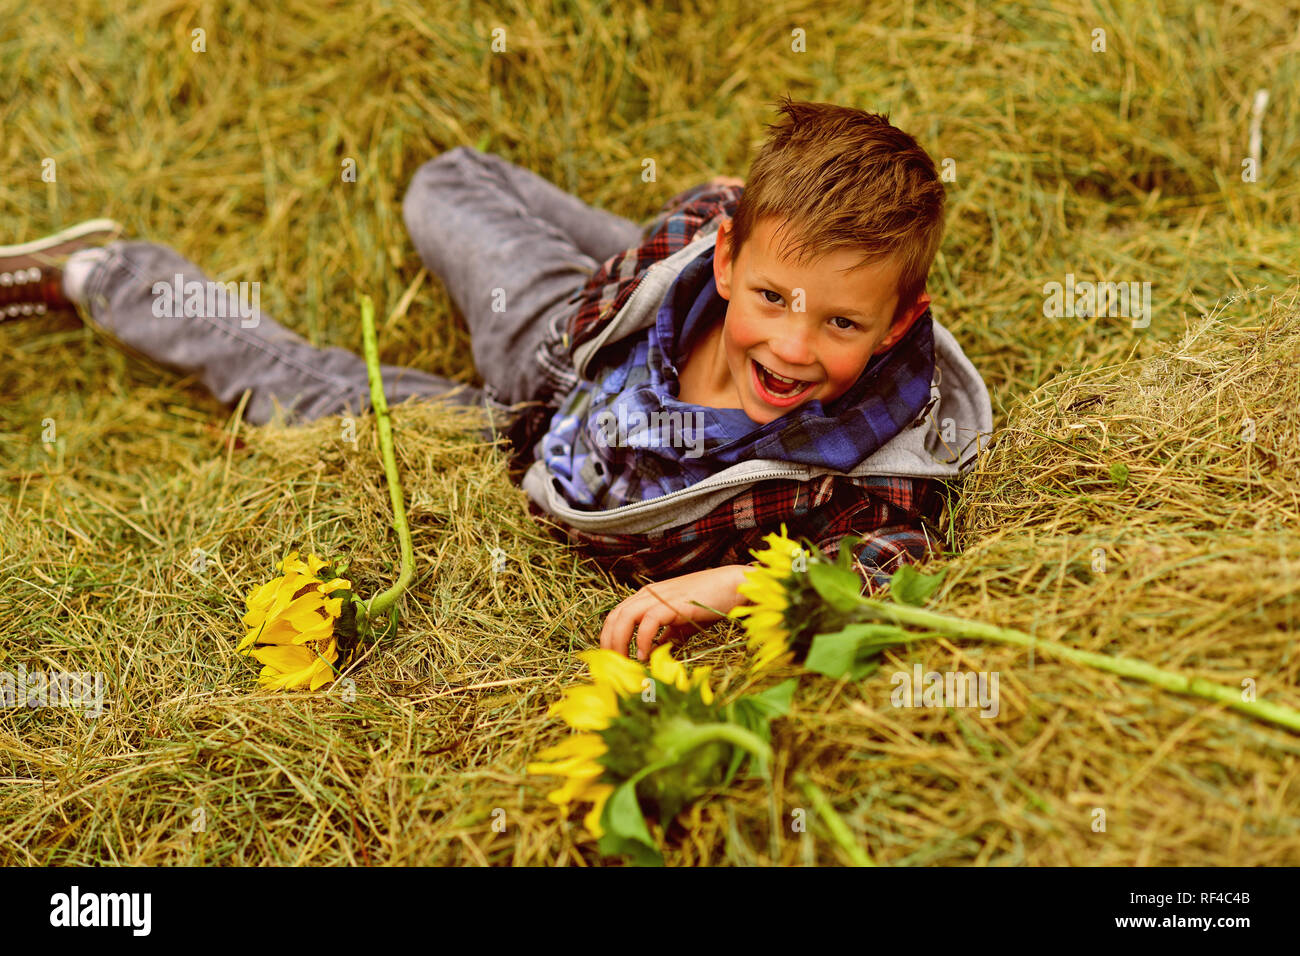 Happy childhood time. Happy boy. Little boy happy smiling in hay. Little child on farm. Play is the work of childhood - Stock Image